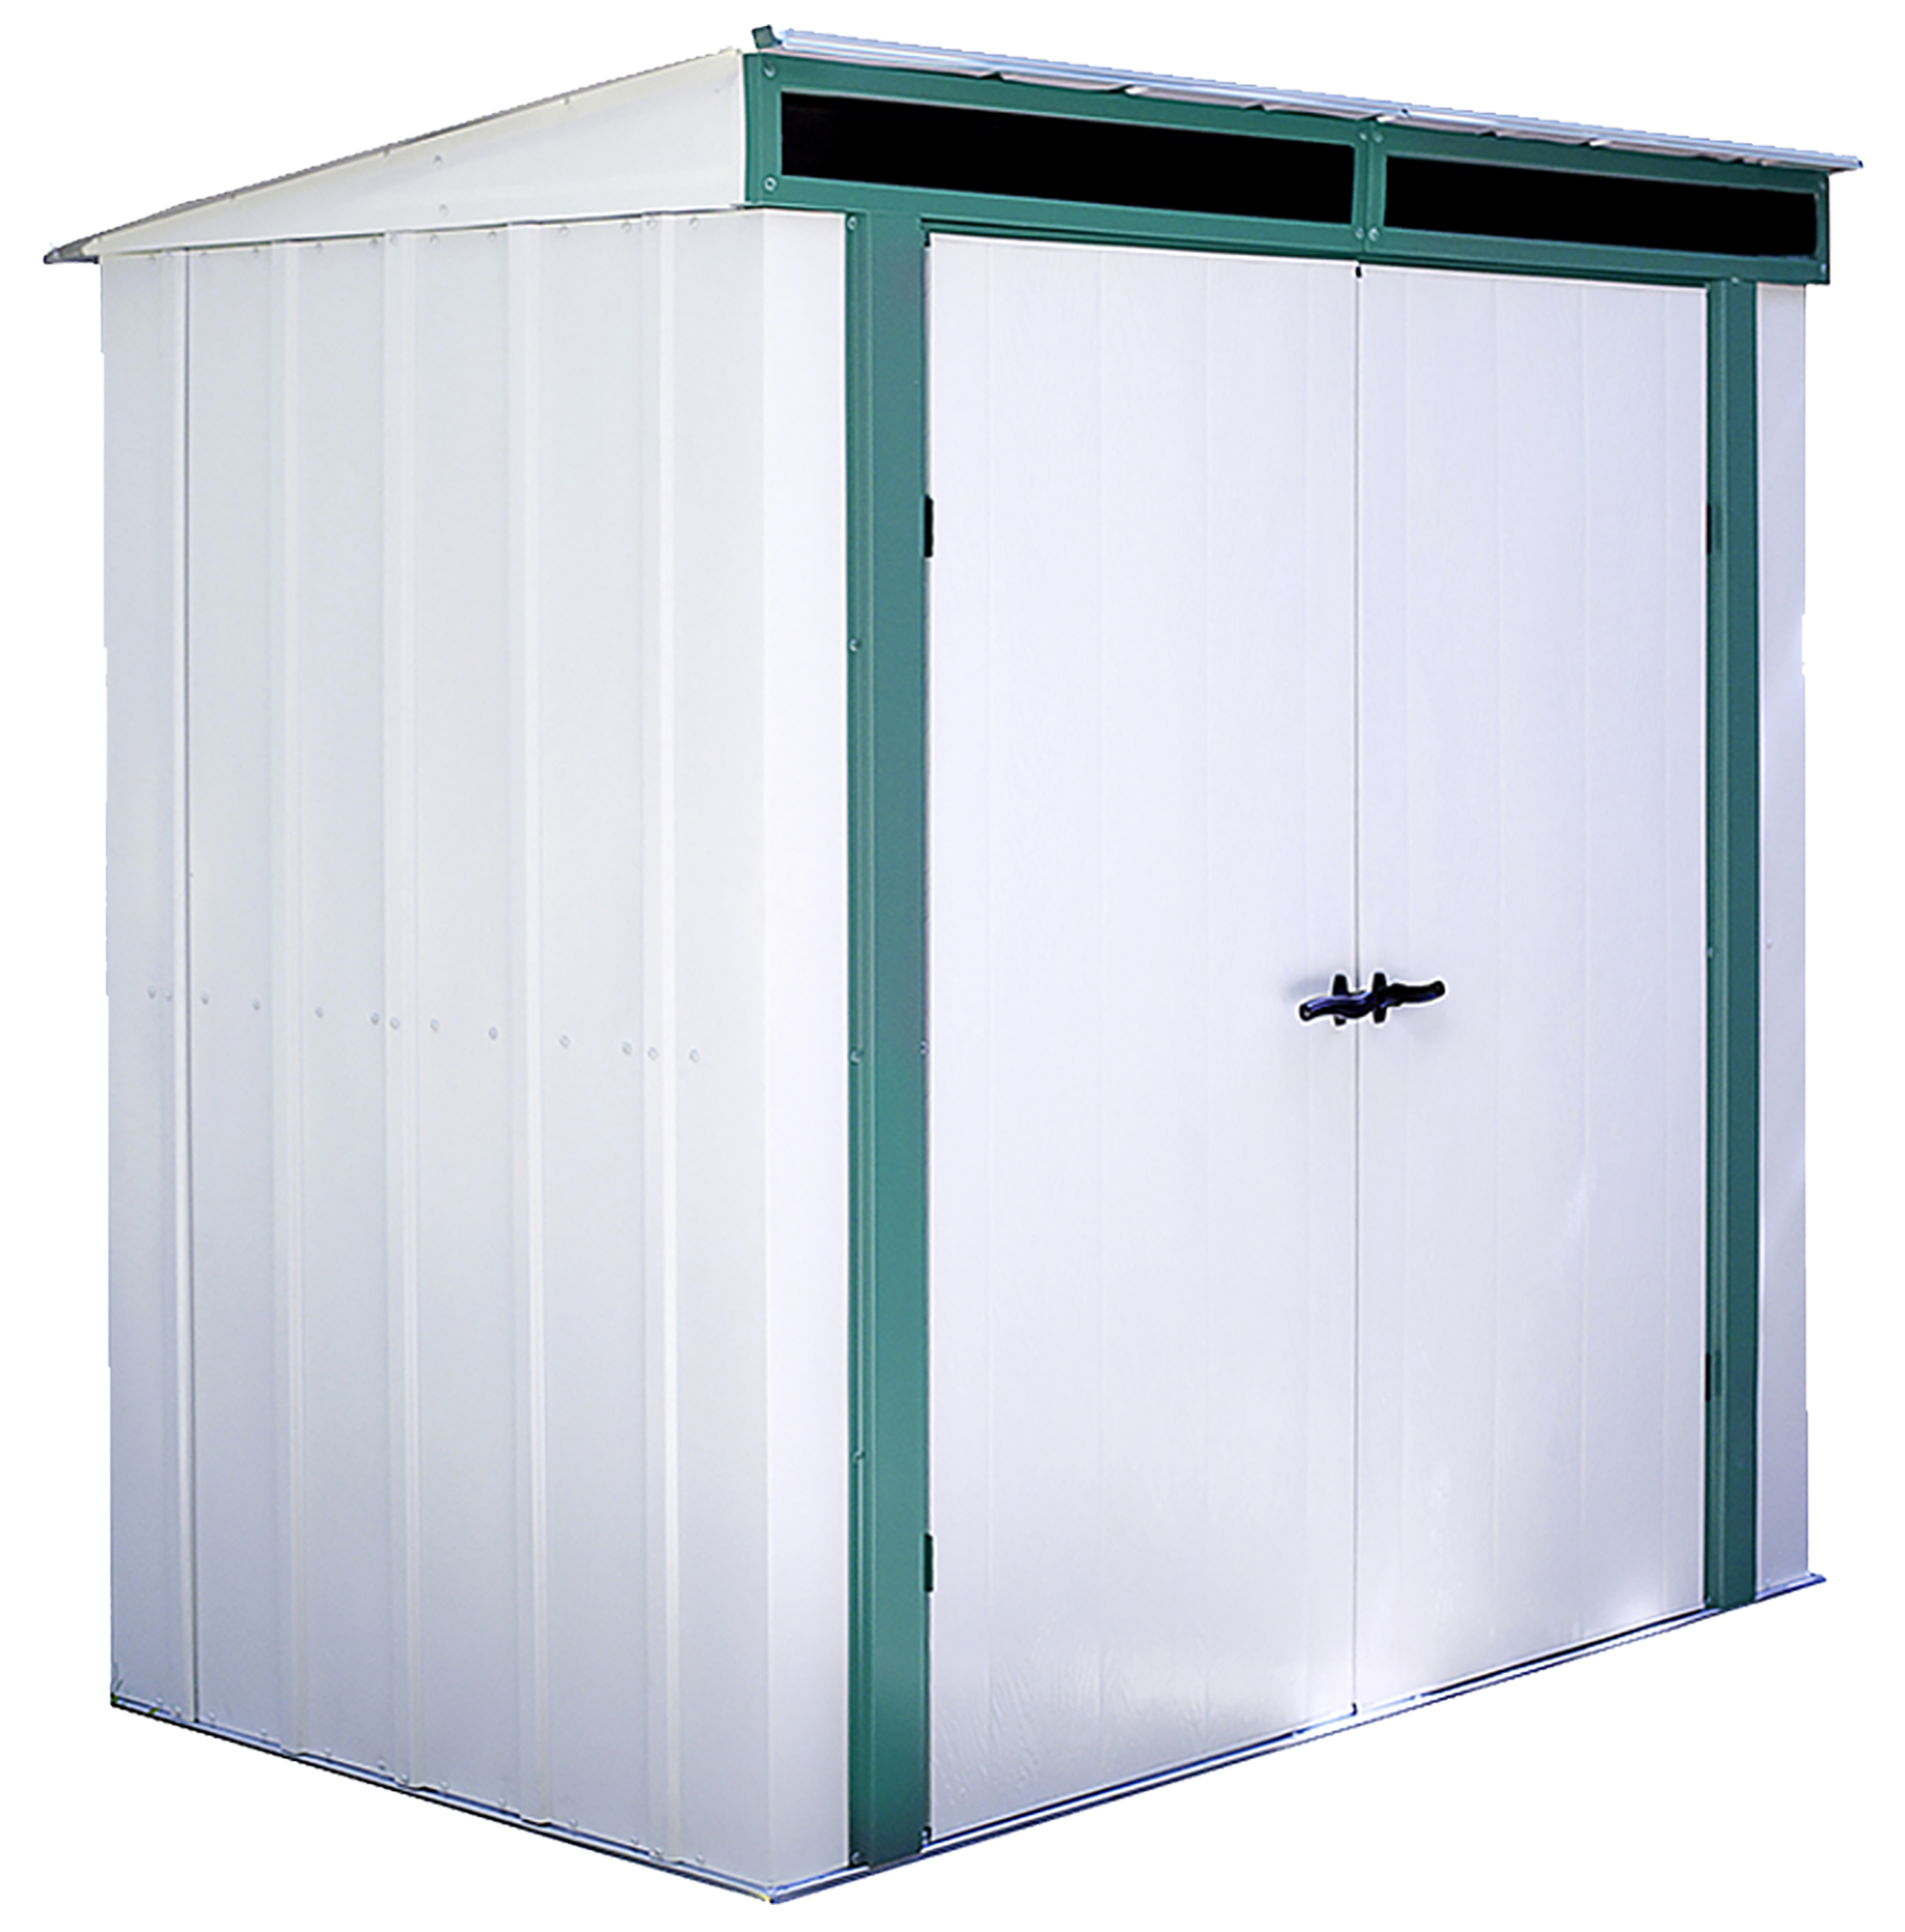 Euro-Lite 6 x 4 ft. Steel Storage Shed Pent Roof Green/Eggshell